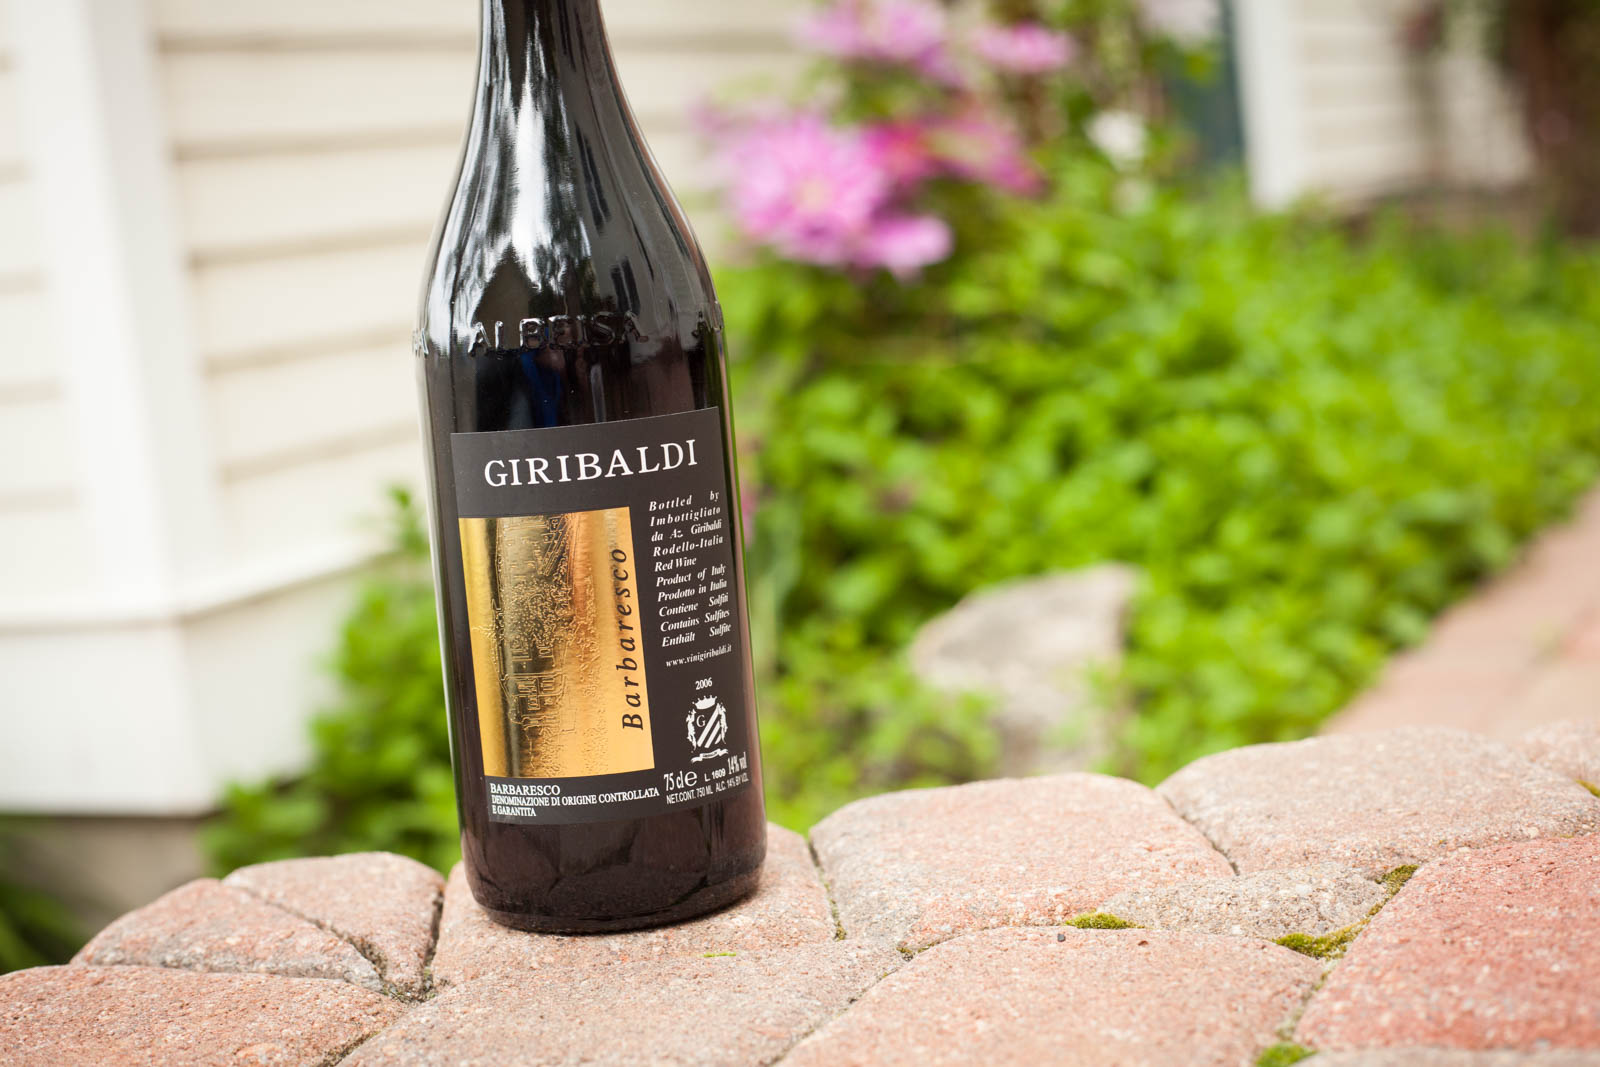 2006 Giribaldi Barbaresco ©Kevin Day